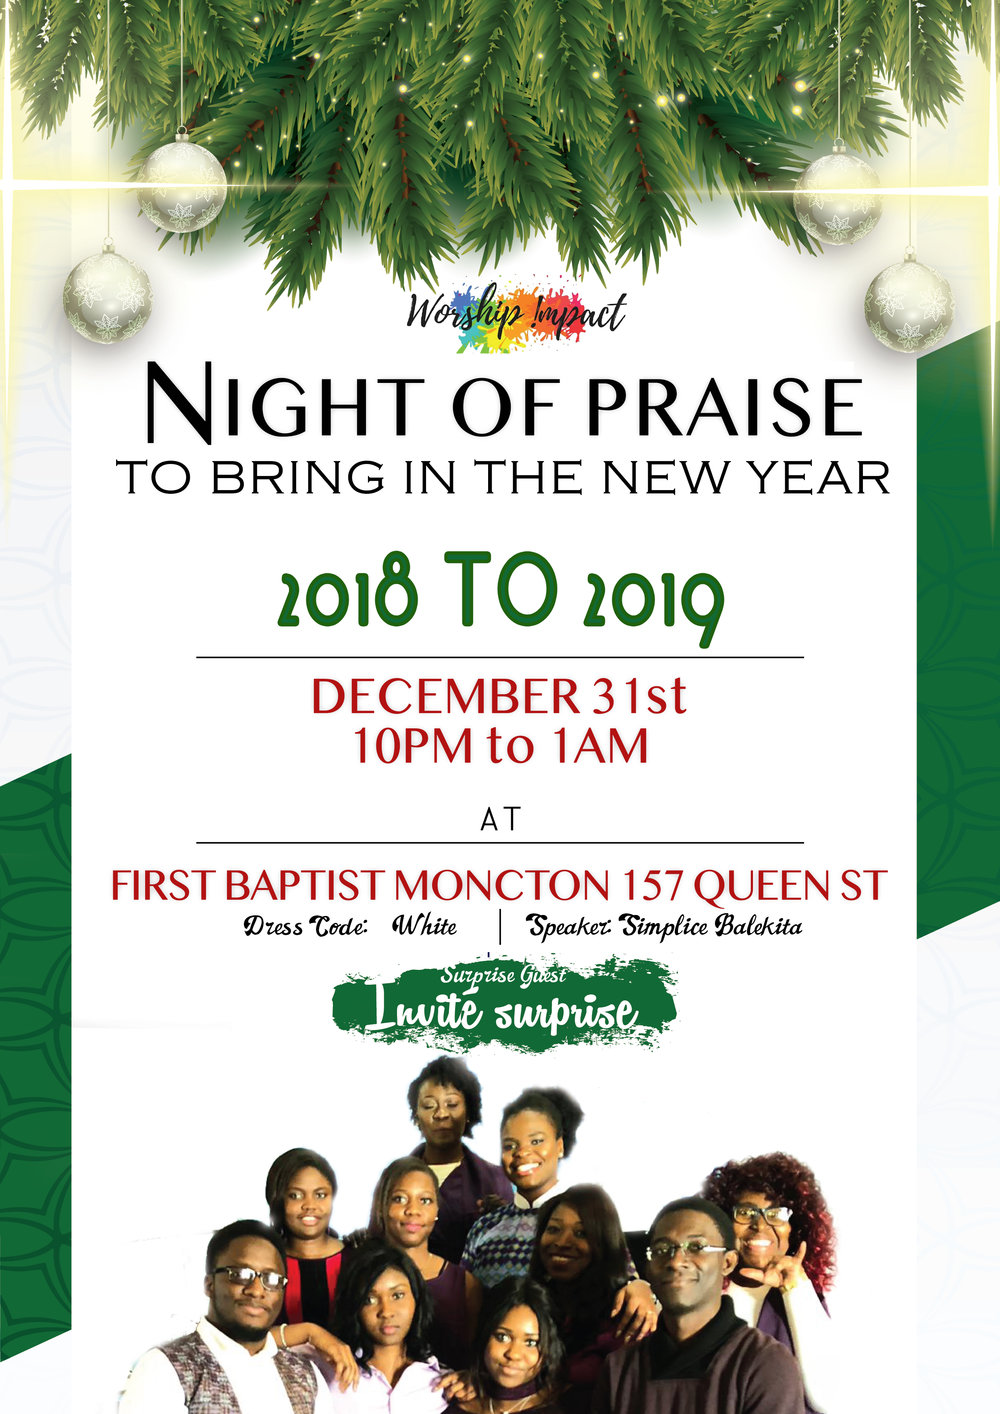 Night of Praise Dec 31 2018 Poster.jpg